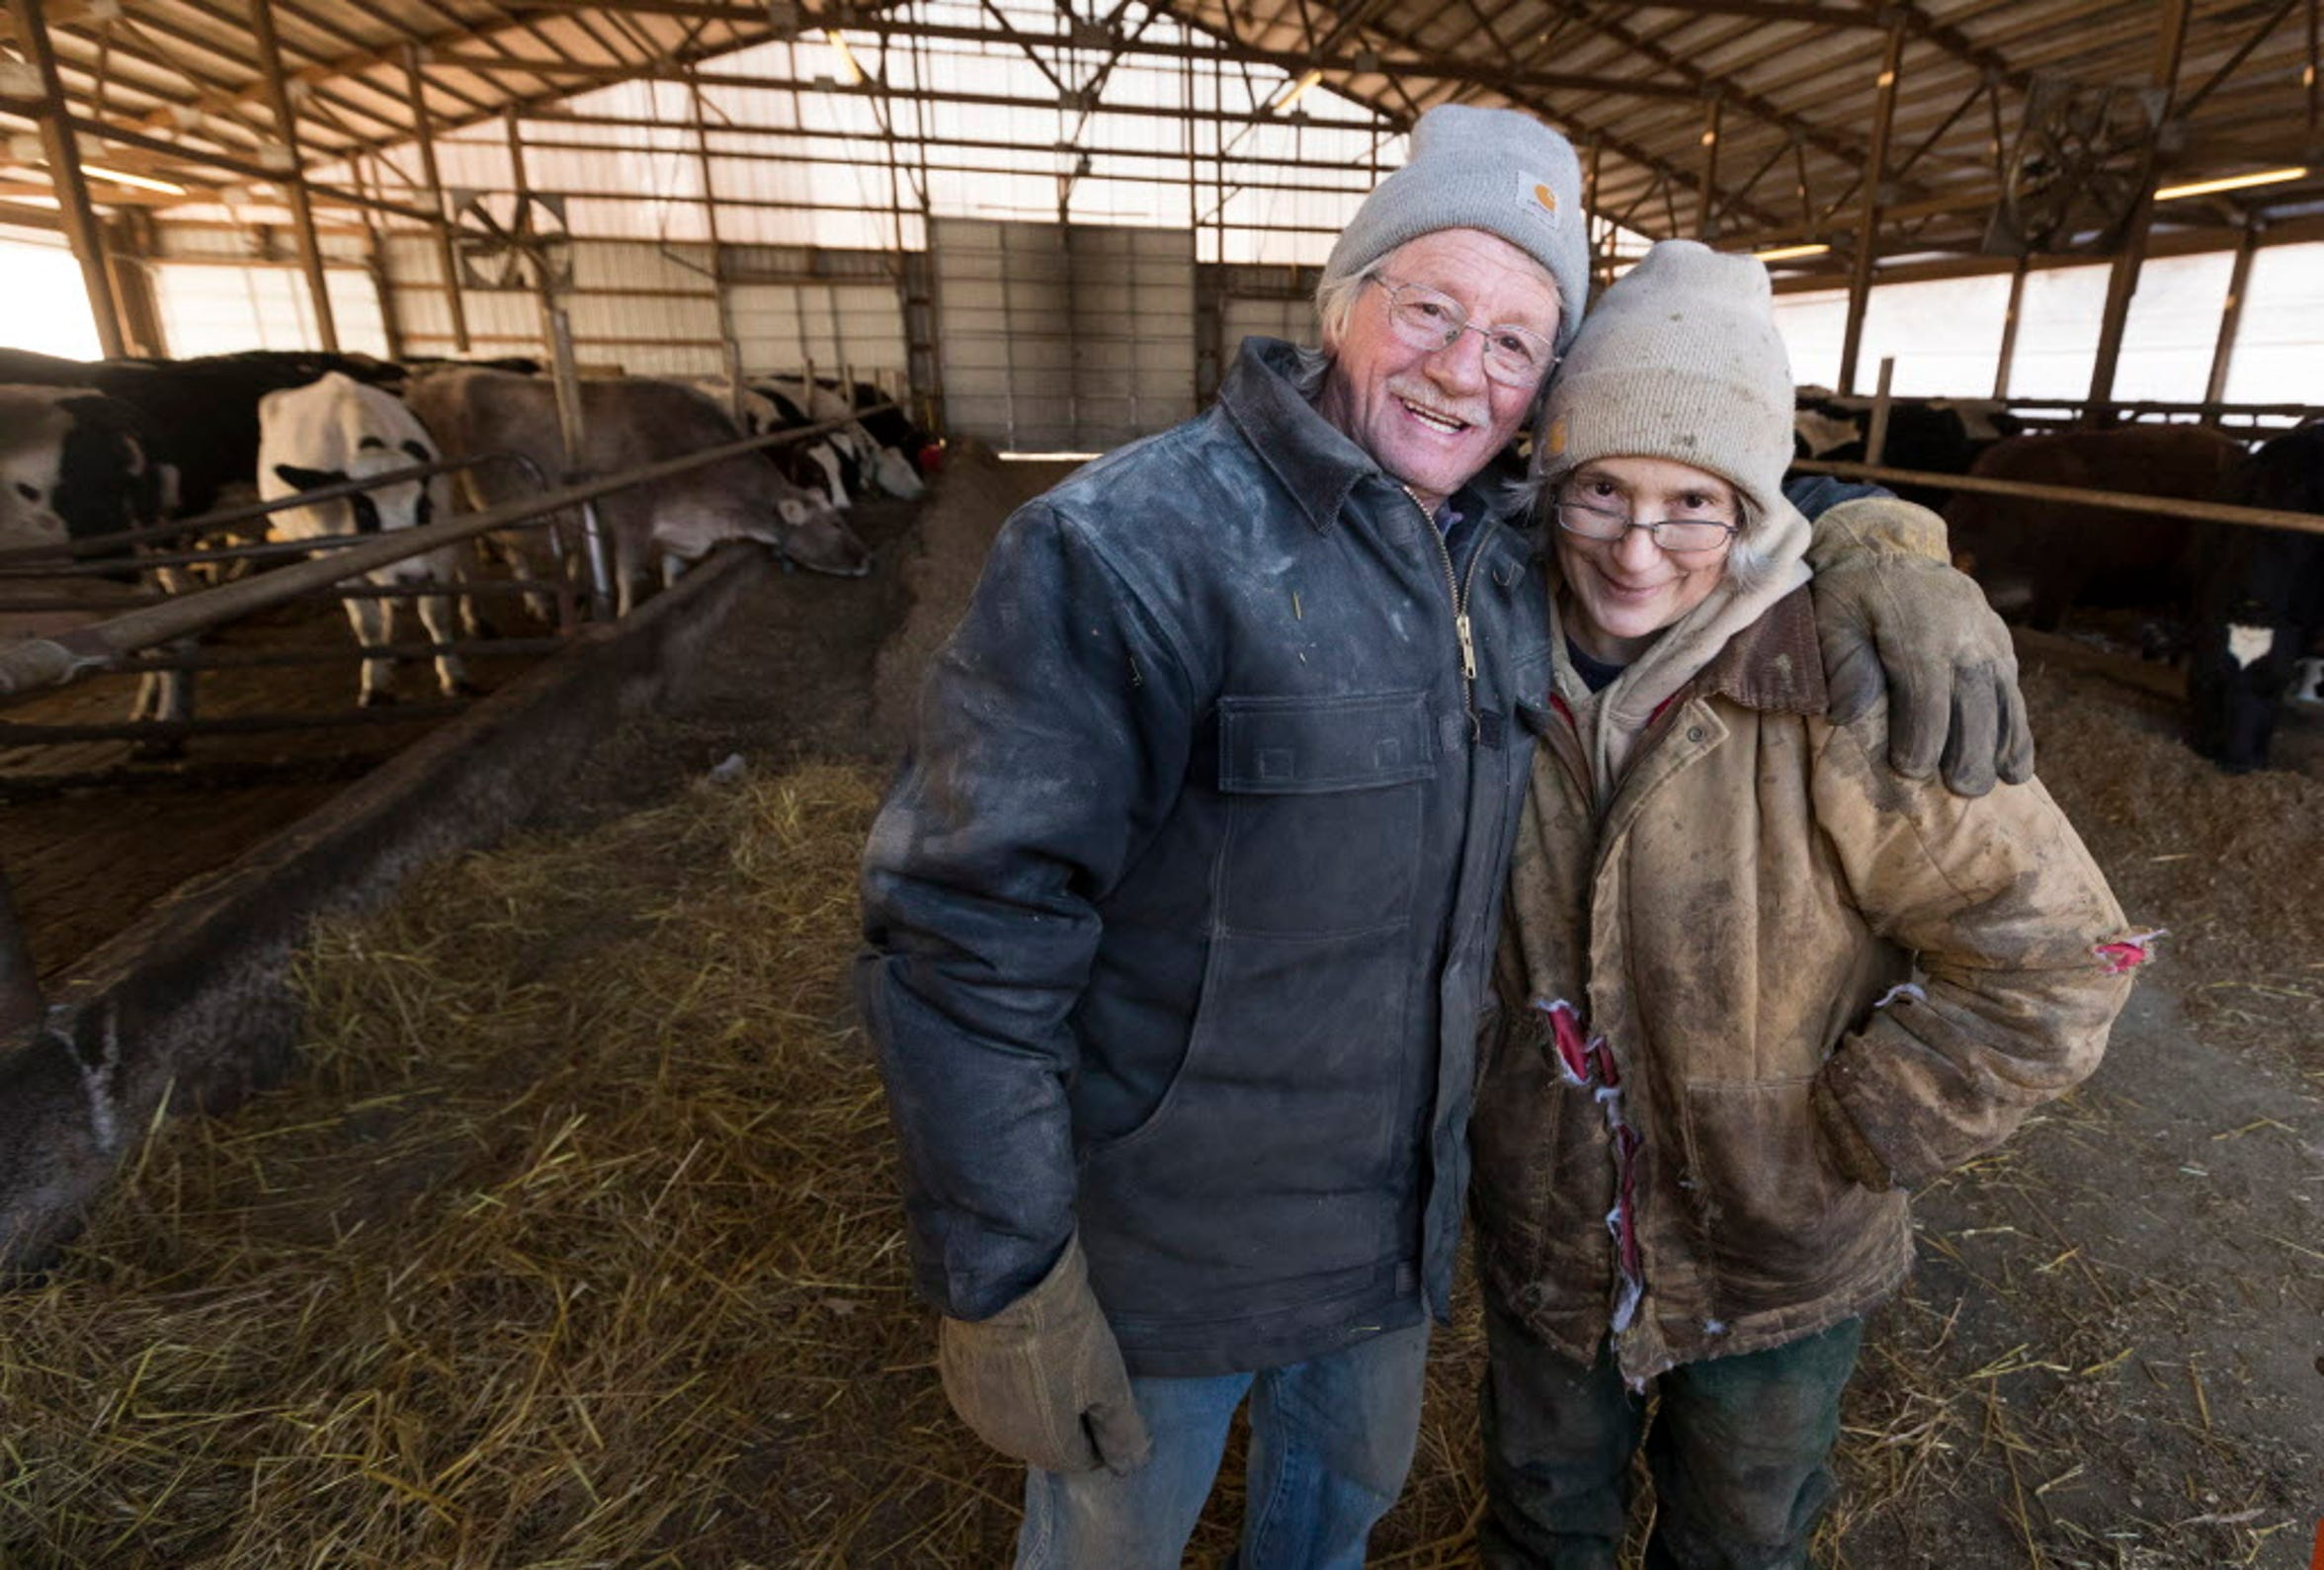 Chuck and Sue Spaulding have partnered with their daughter and her husband to run S & S Dairy. Like most dairy farmers, they are struggling.